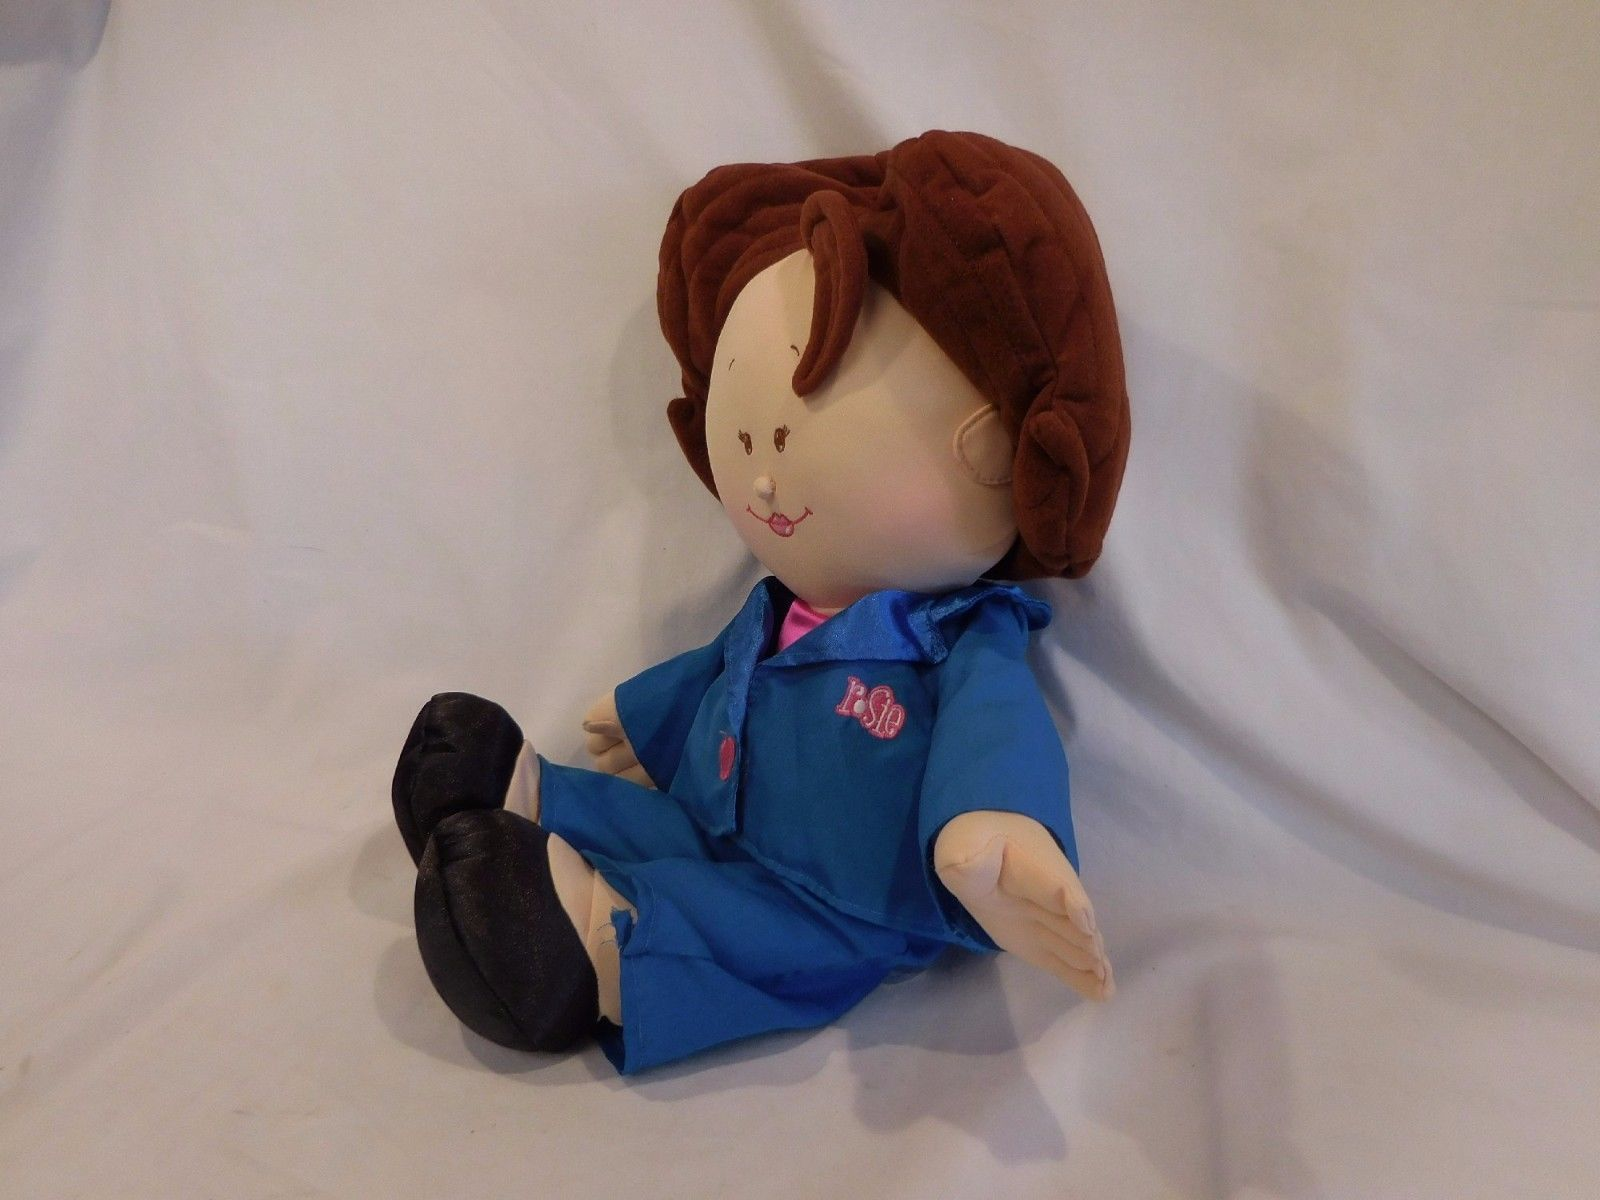 Rosie O Donnell O Doll Talking Plush Soft Toy Tyco 1997 Comedian Actress TV Show image 6